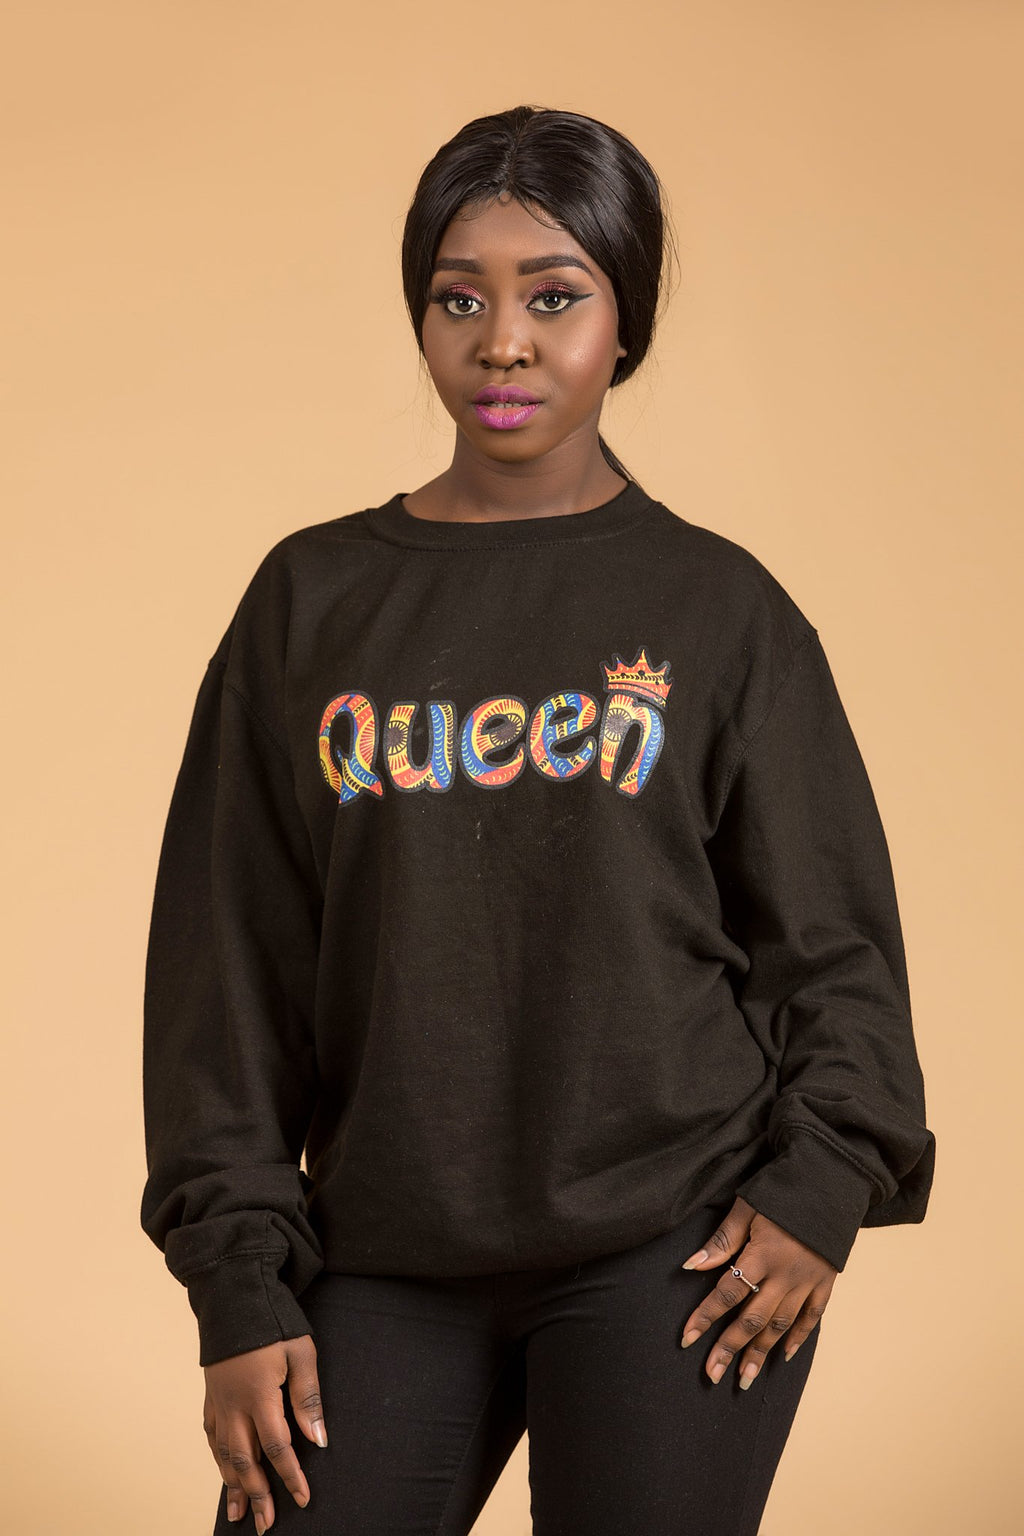 African Queen Black Sweatshirt Top - M.A.DKollection